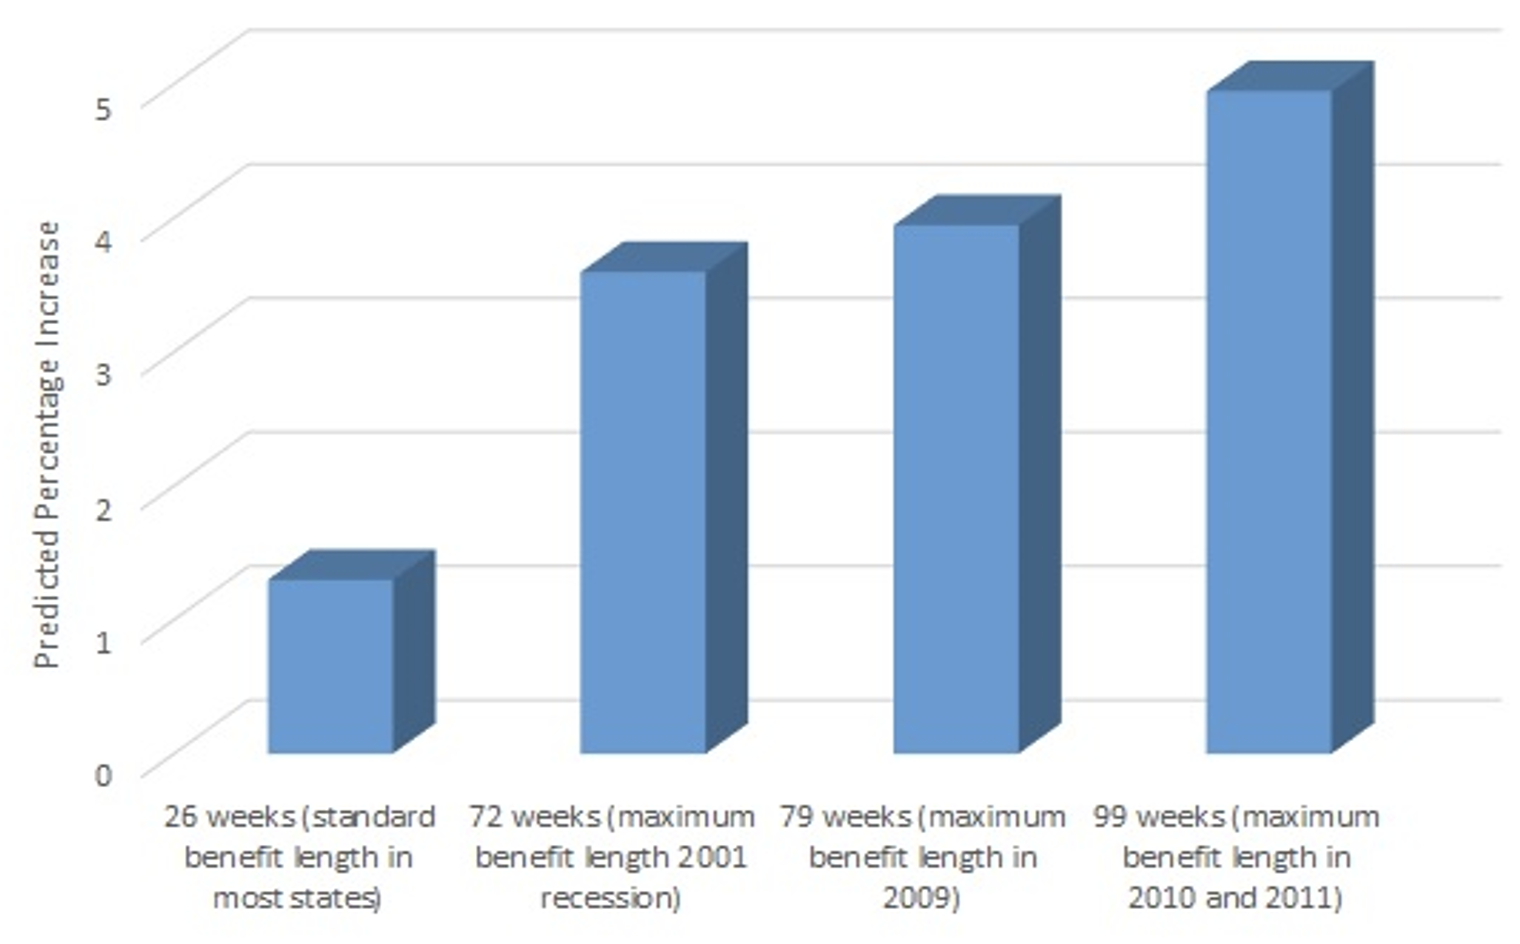 Unemployment benefits, job match quality, and labour market functioning 2